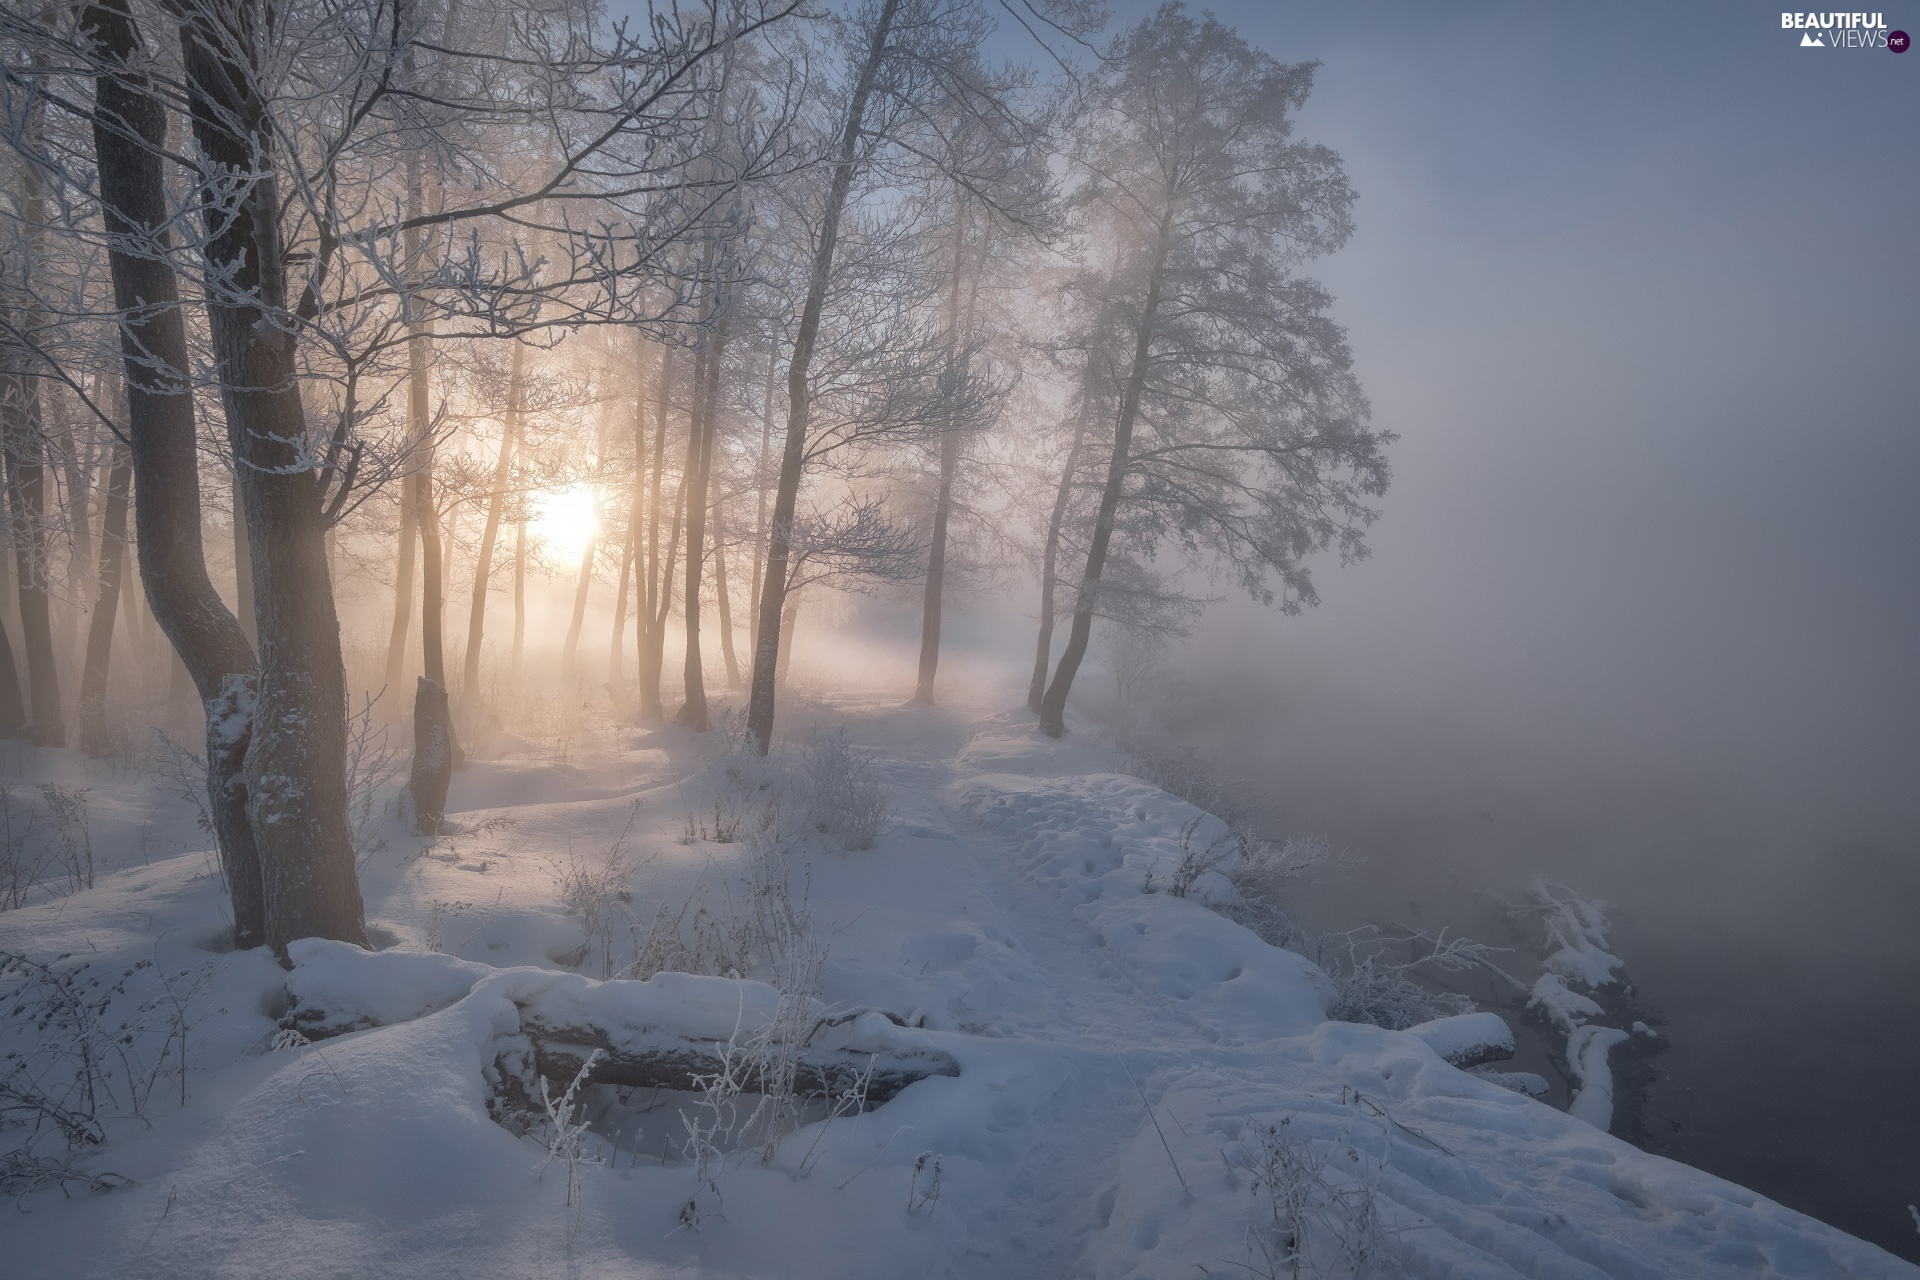 River, Fog, trees, viewes, winter